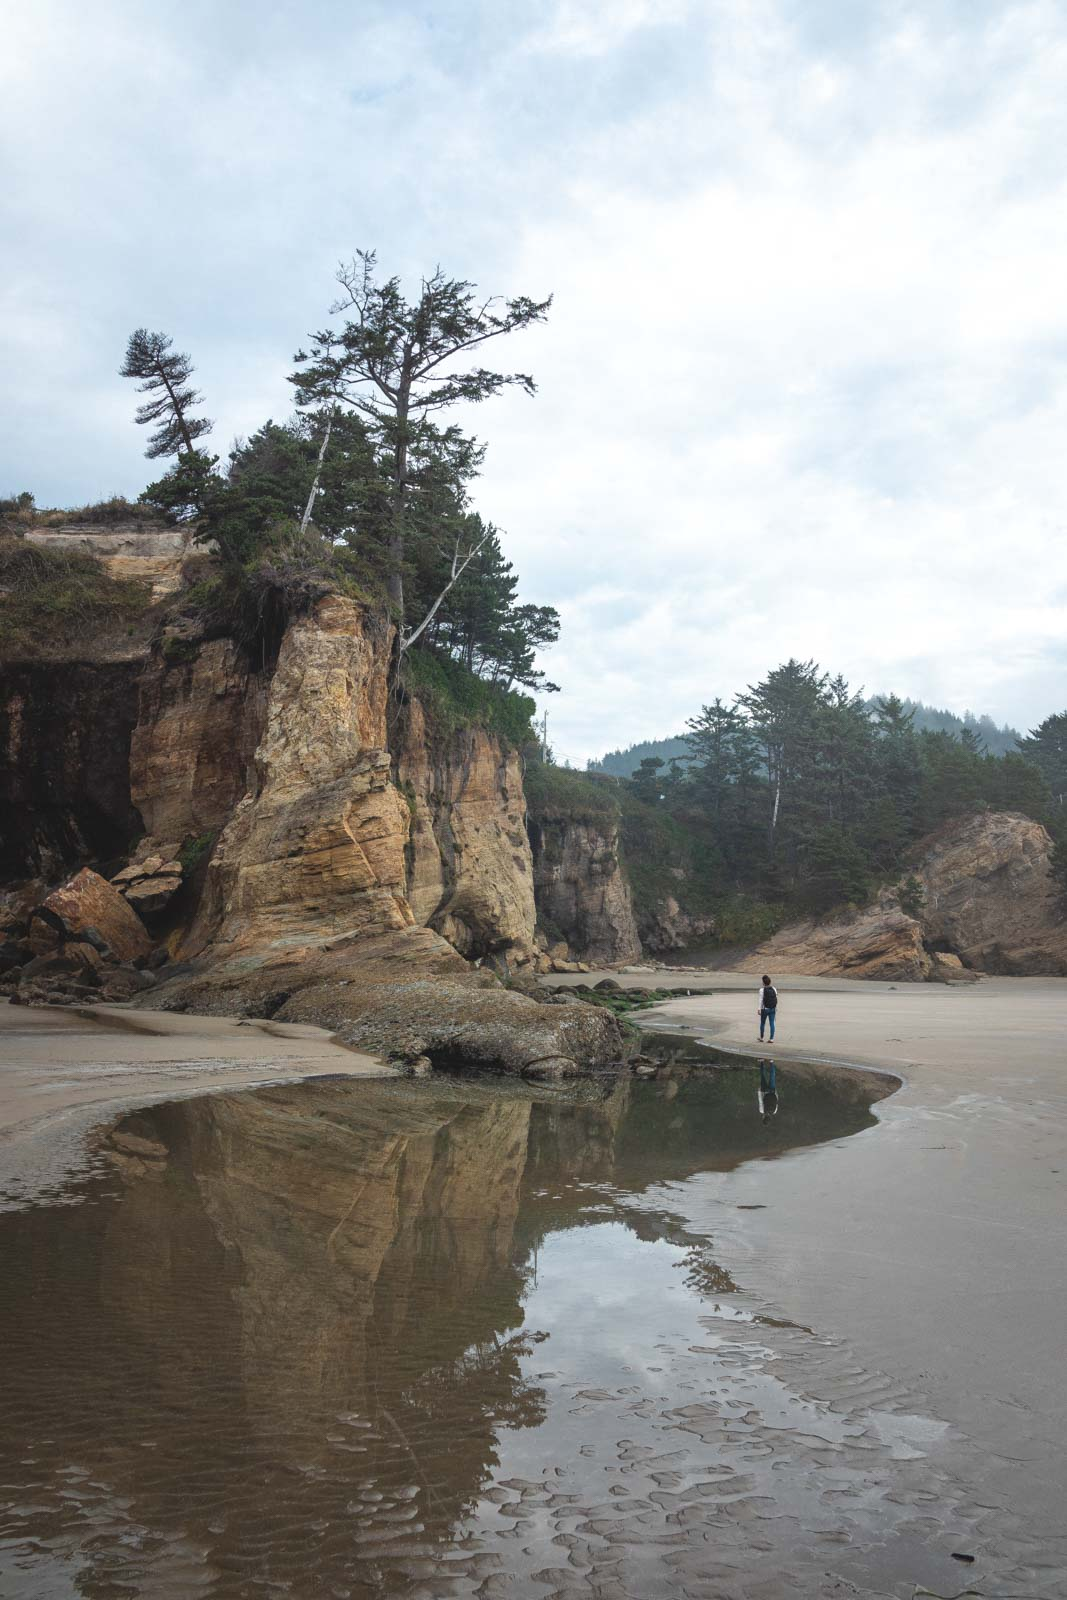 Beach with large rock and stream at Otter Rock State Park